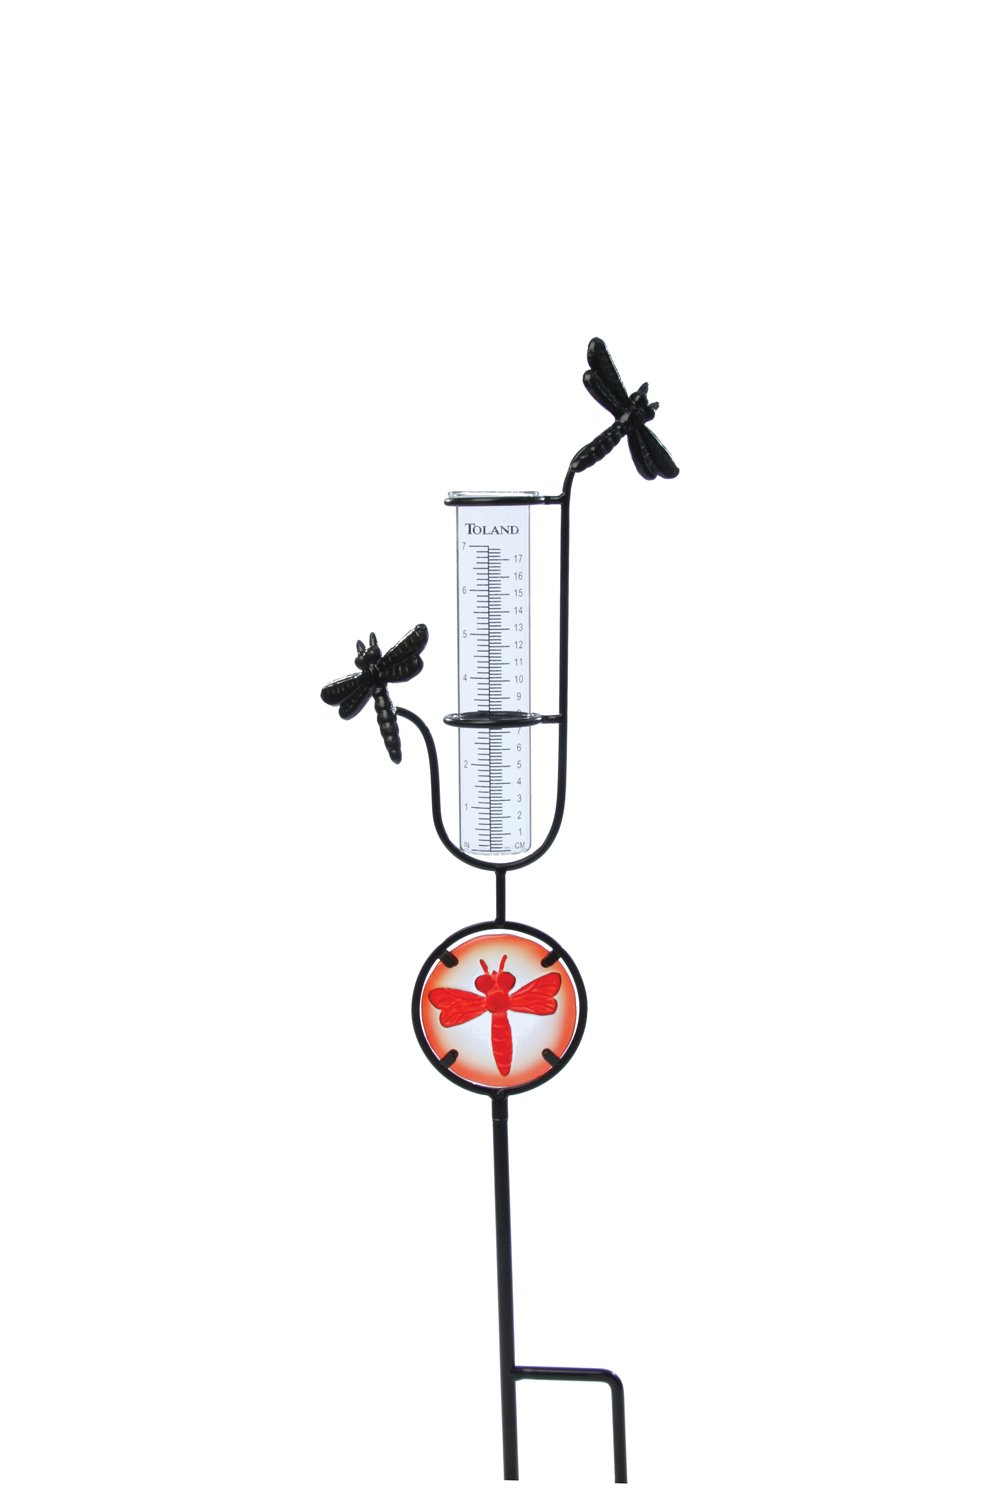 Toland Home Garden Dragonfly Decorative Outdoor Garden StakeRain Gauge Statuewith Glass Udometerfor Yards, Gardens, and Planters 218187 by Toland Home Garden